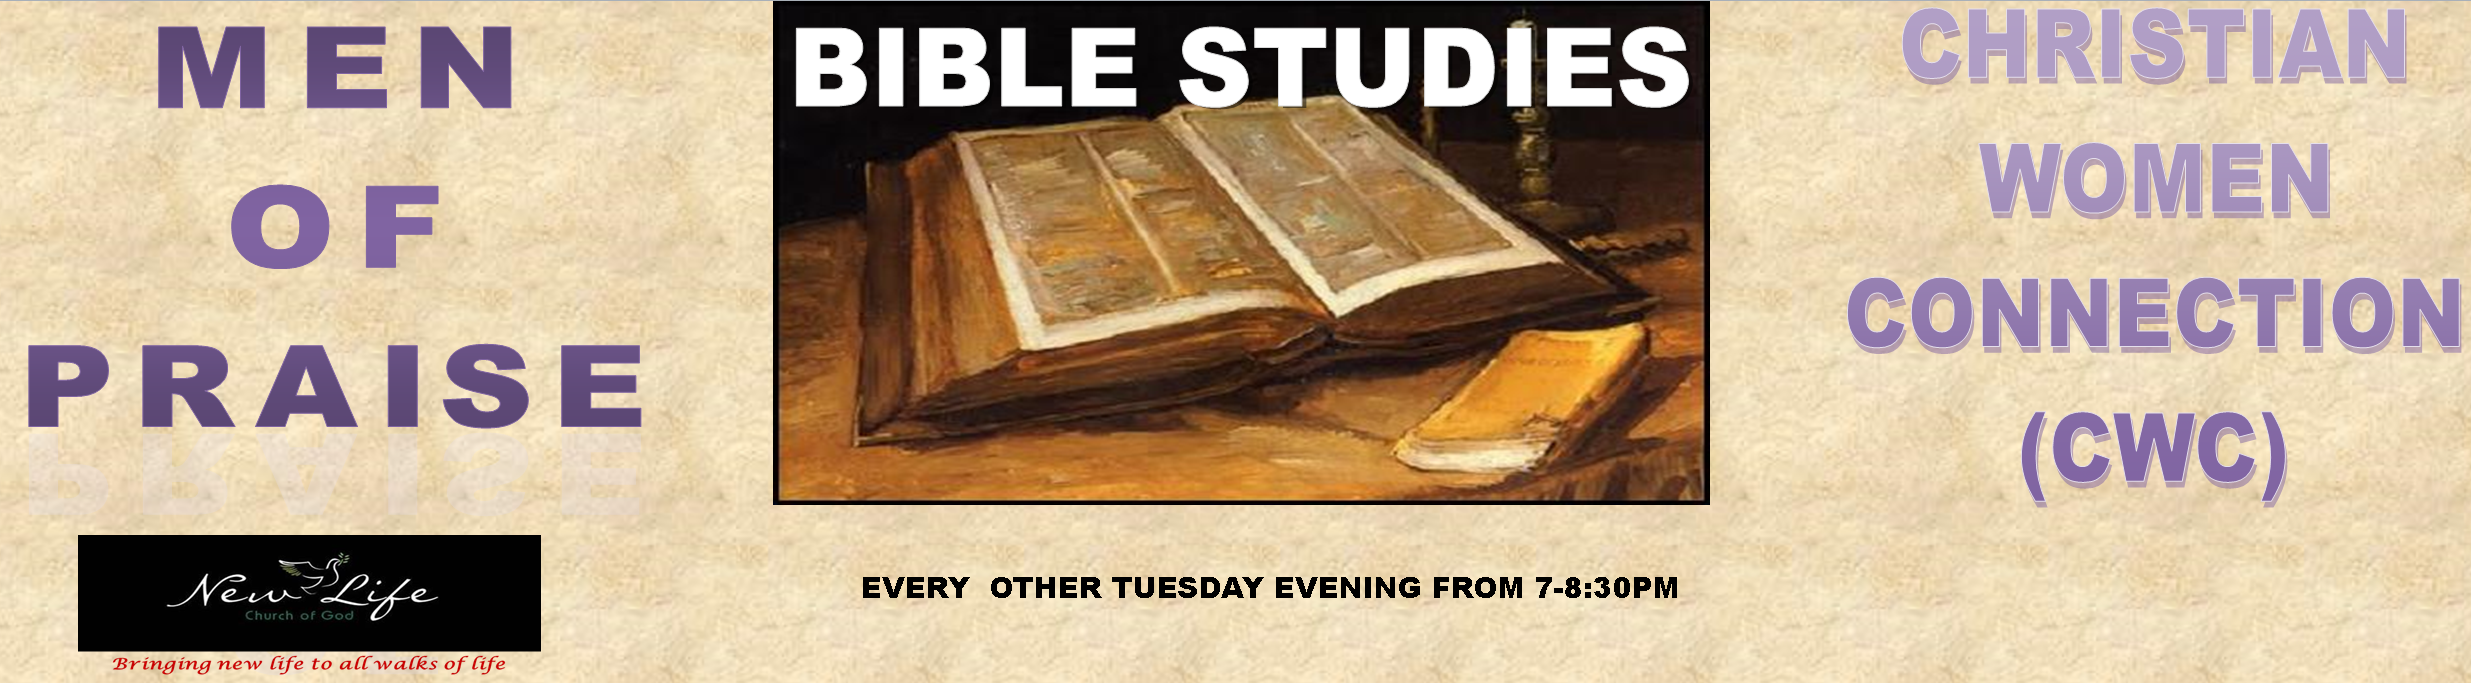 Bible-Study-Slider-Wider-Version